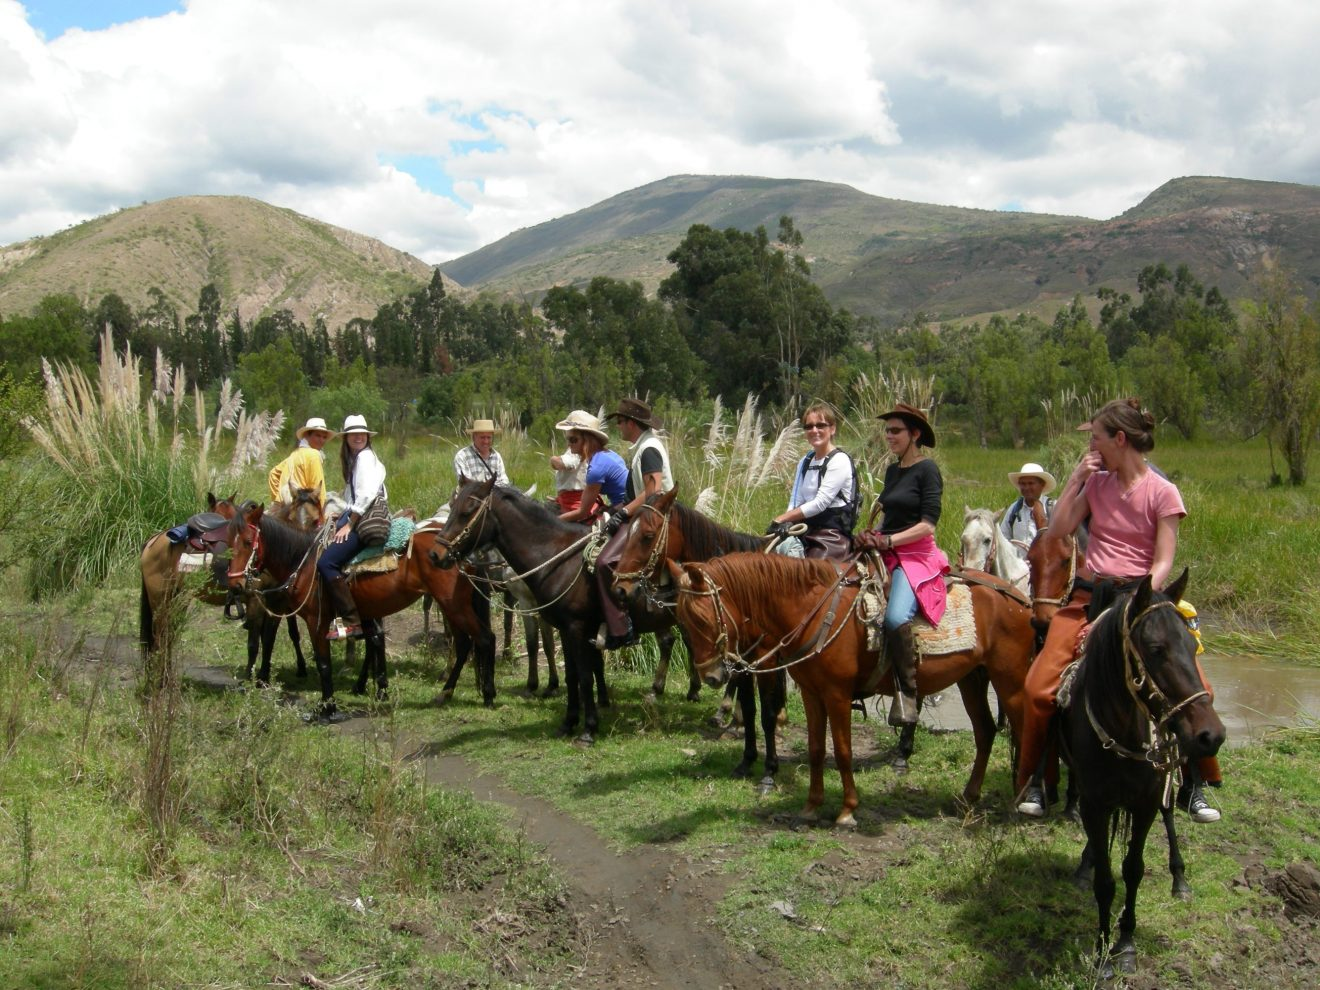 Horse Backriding at Villa de Leyva, Desert (6)